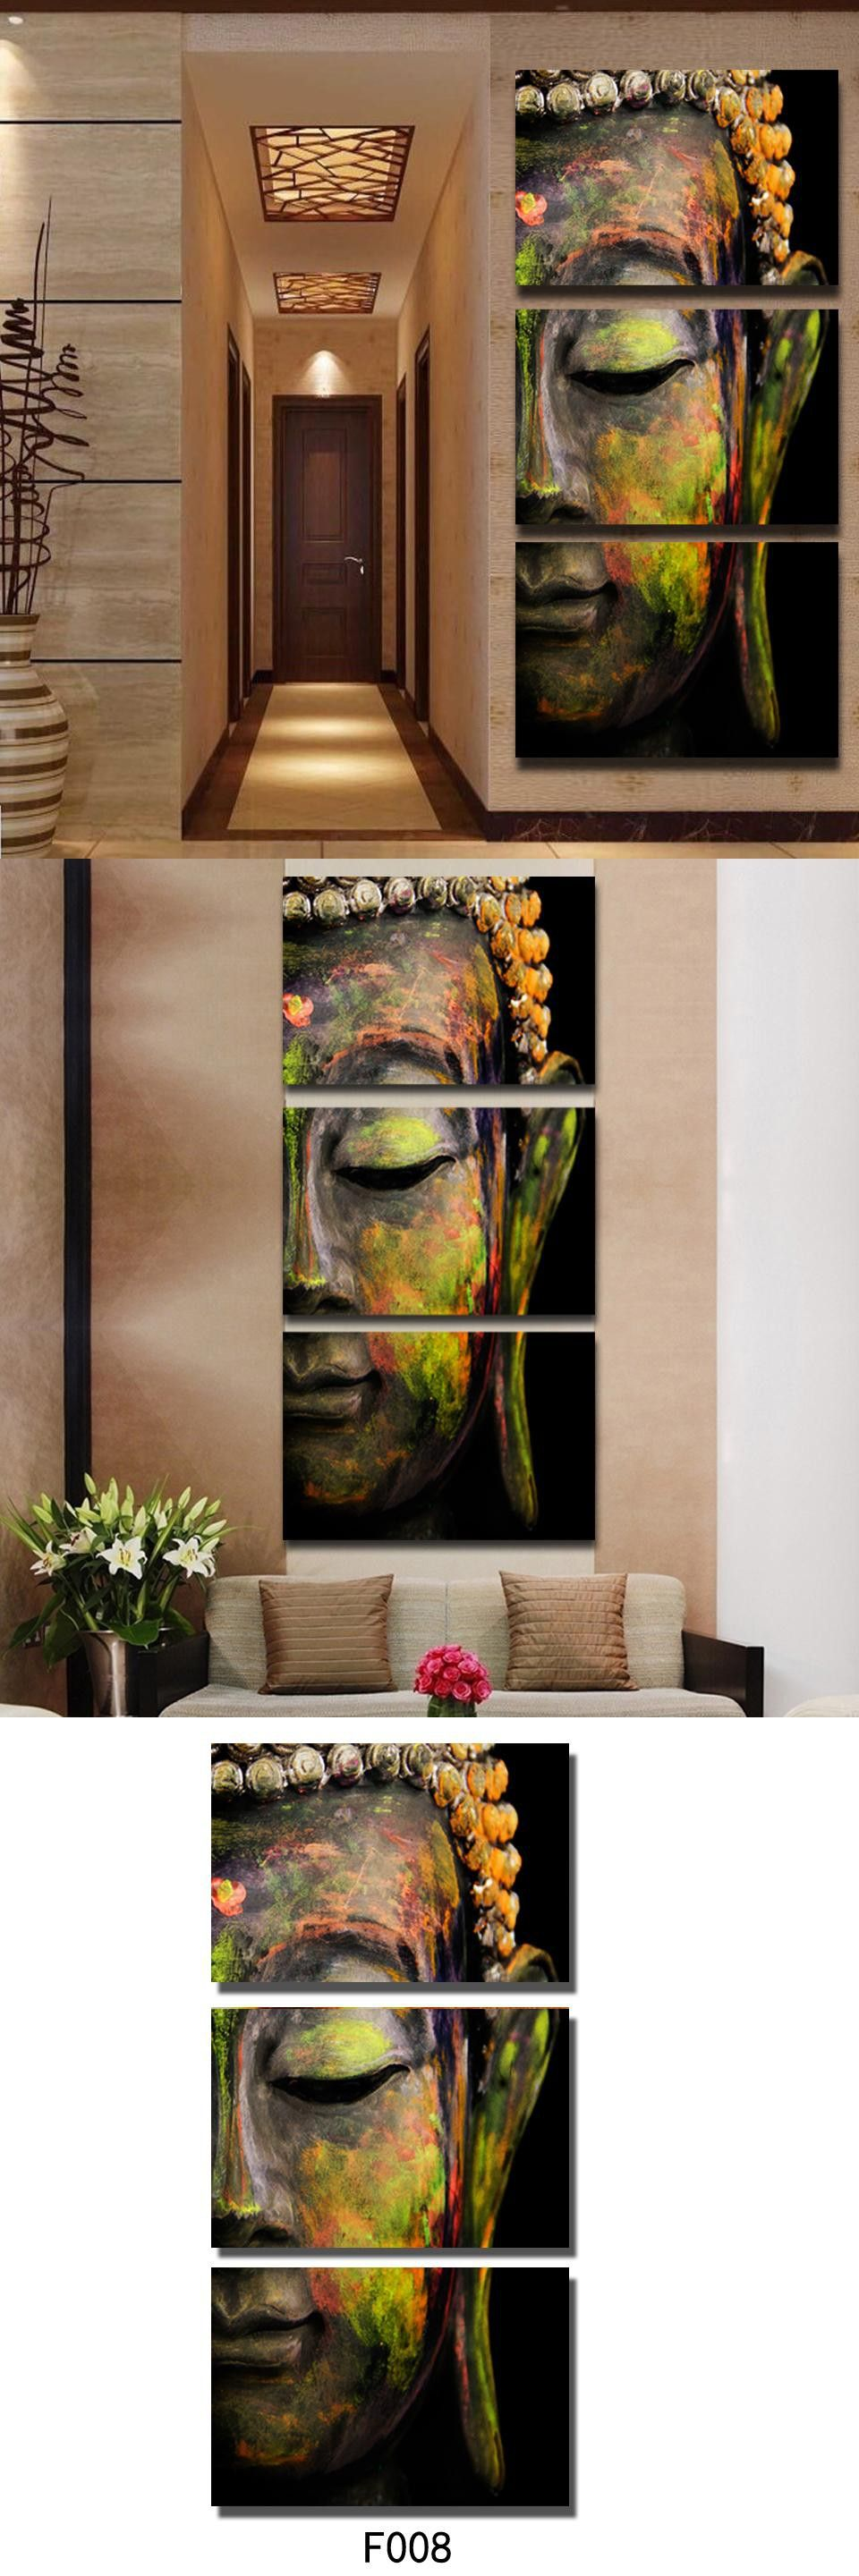 Children s murals diy paint by number wall murals - Modern Colorful Buddha Canvas Prints Painting By Numbers Home Decoration For Diy Art Oil Wall Head Portrait Picture 3 Panel